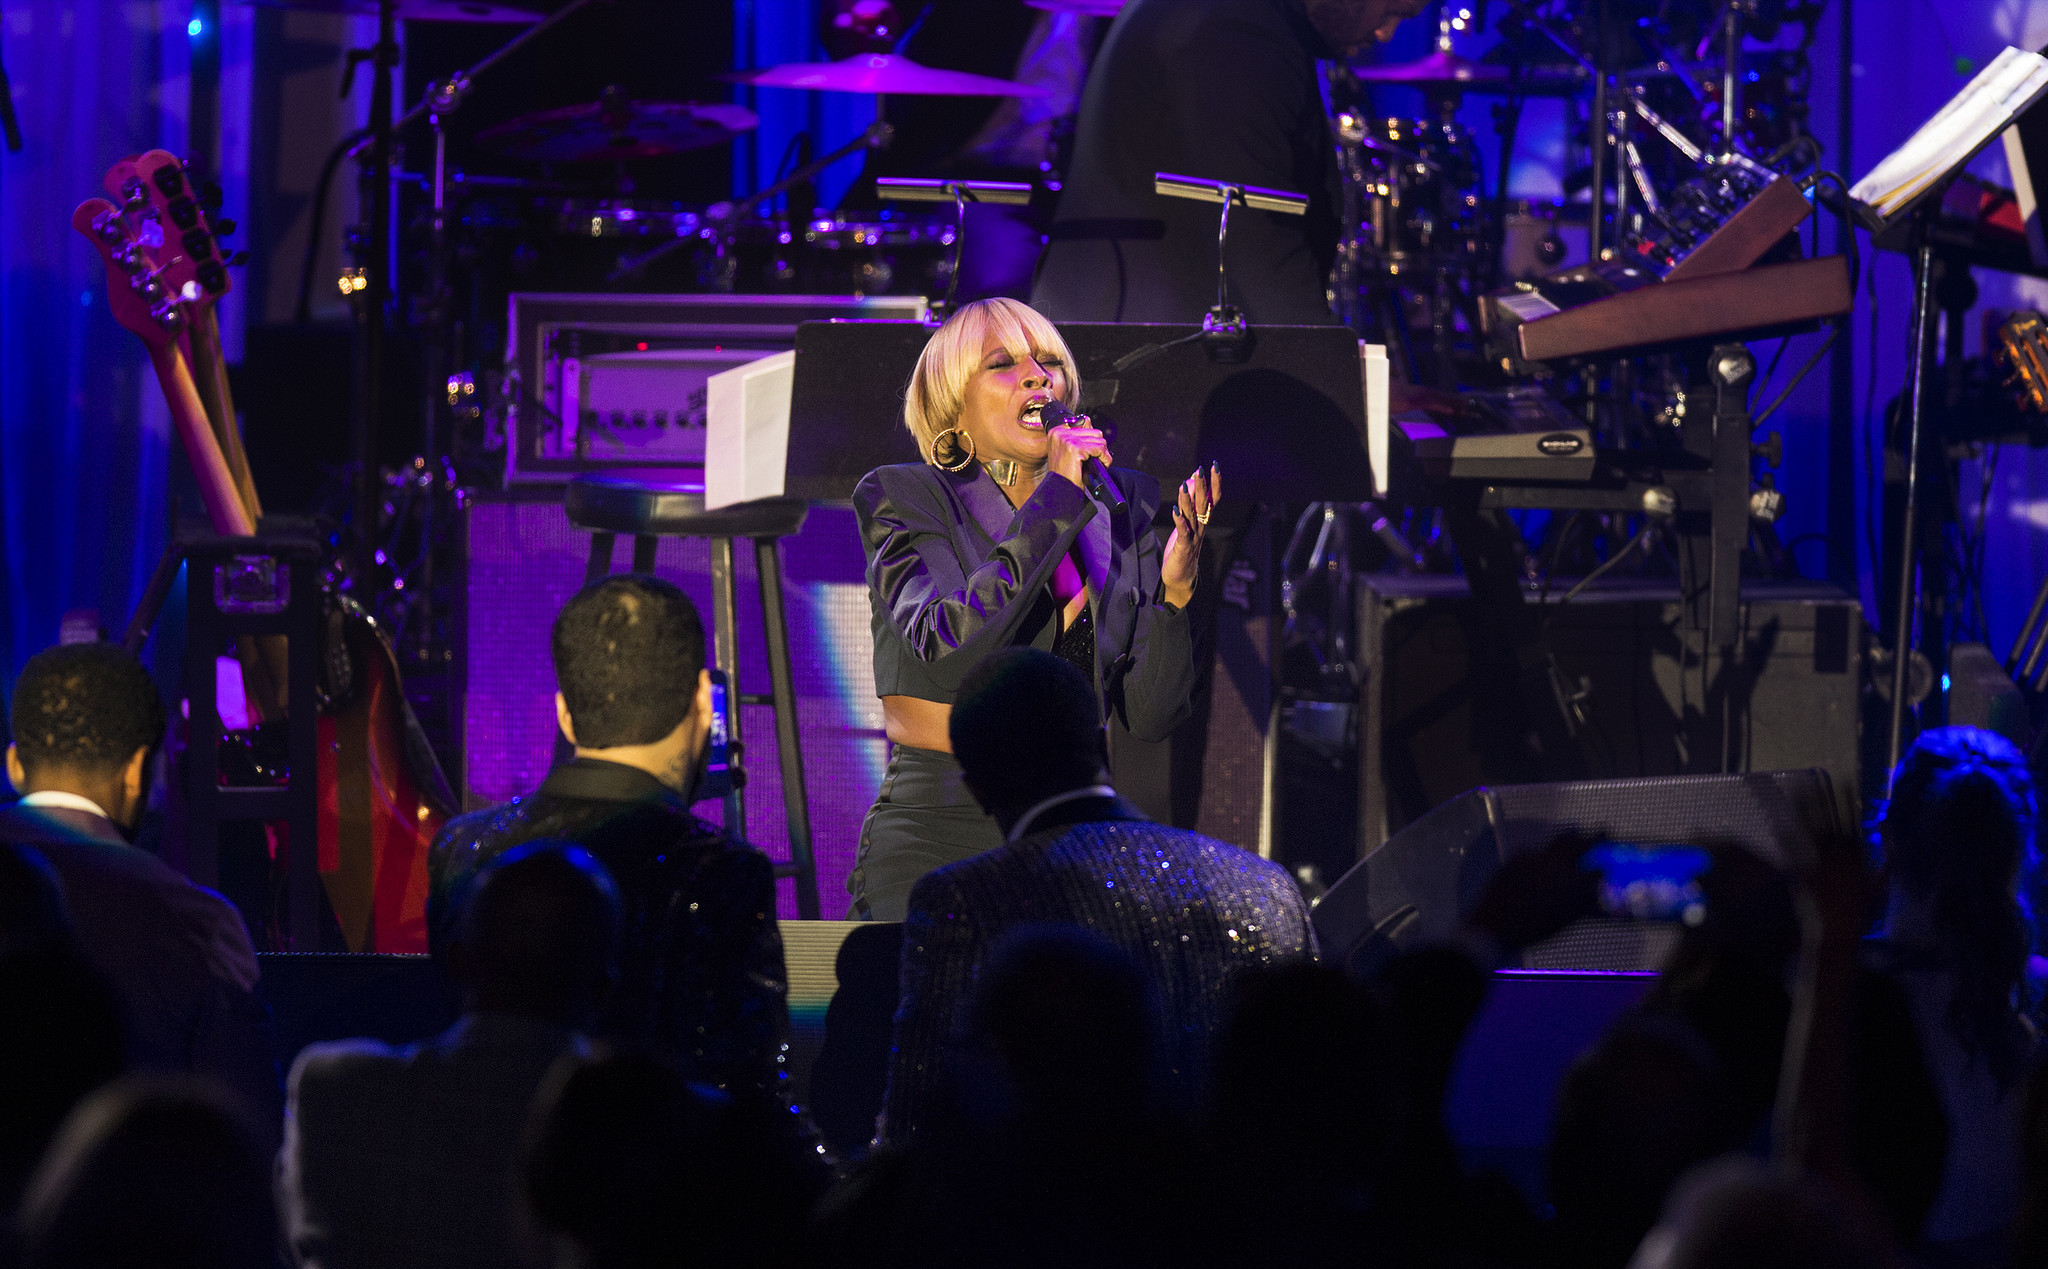 Mary J Blige brings down the house with